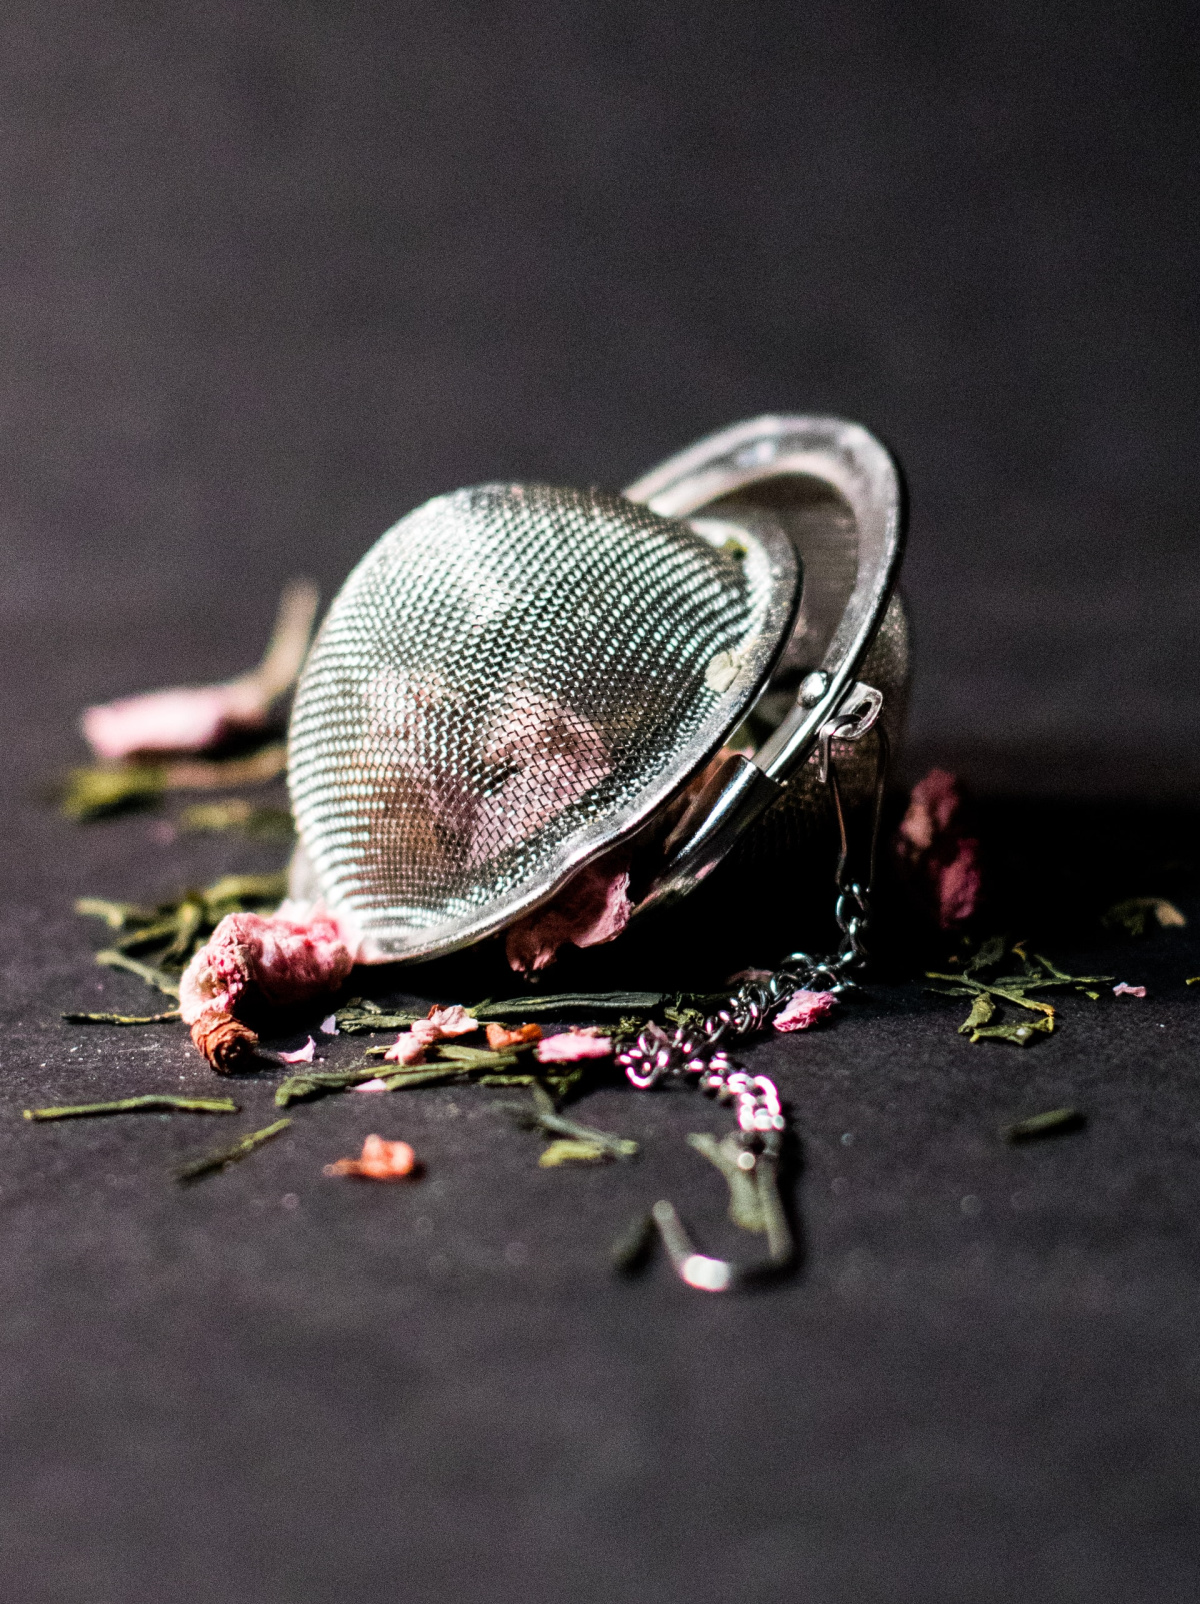 tea ball with dried herbs spilling out